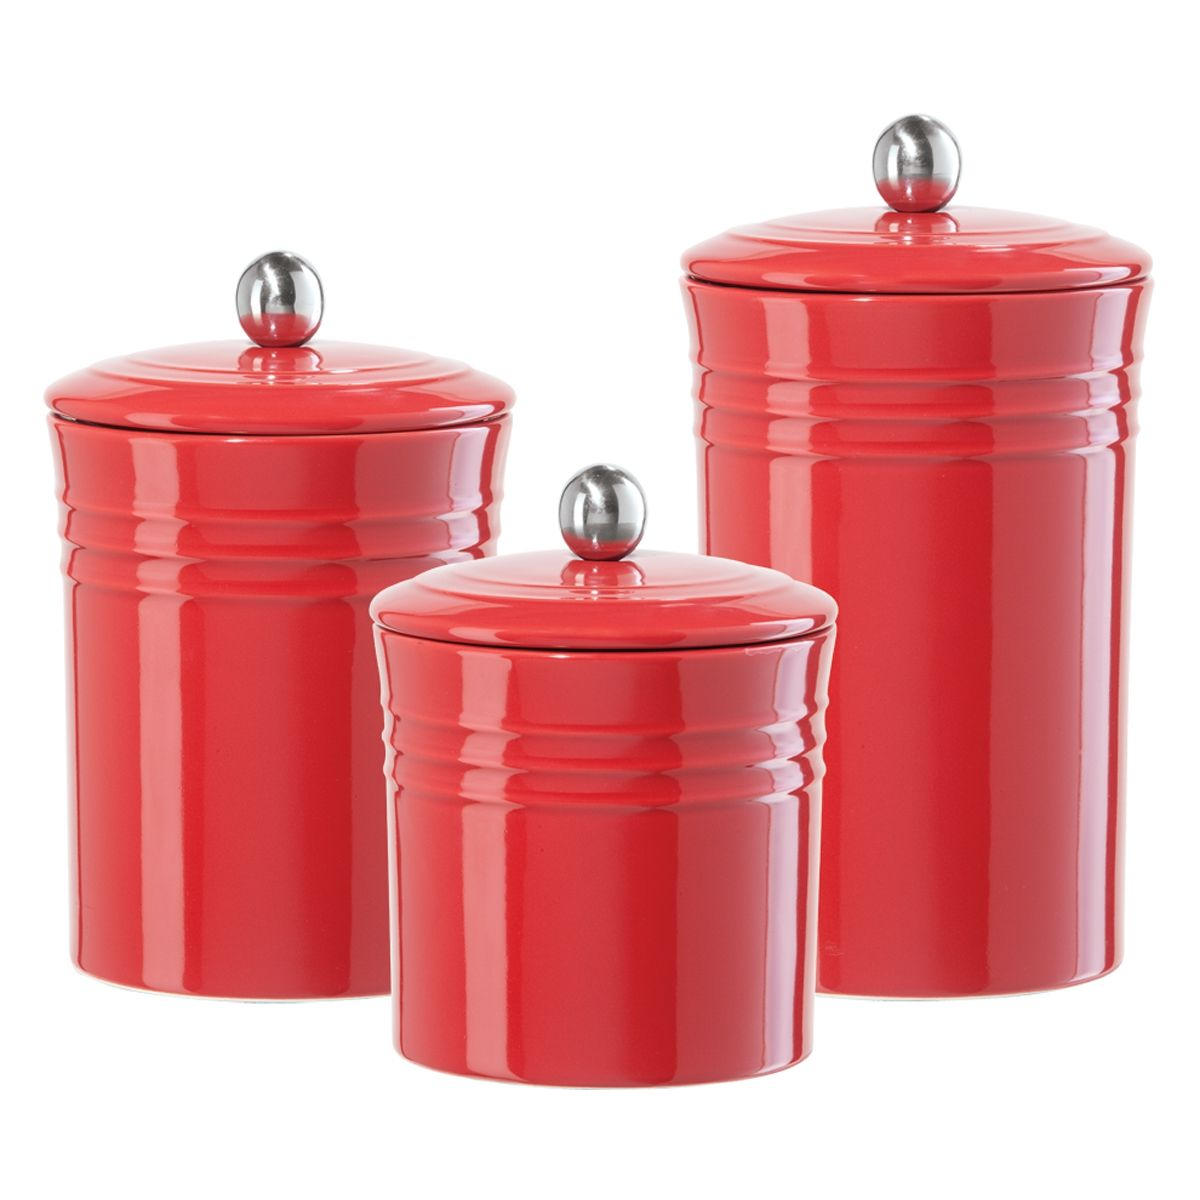 Things to Consider before Buying Kitchen Canisters